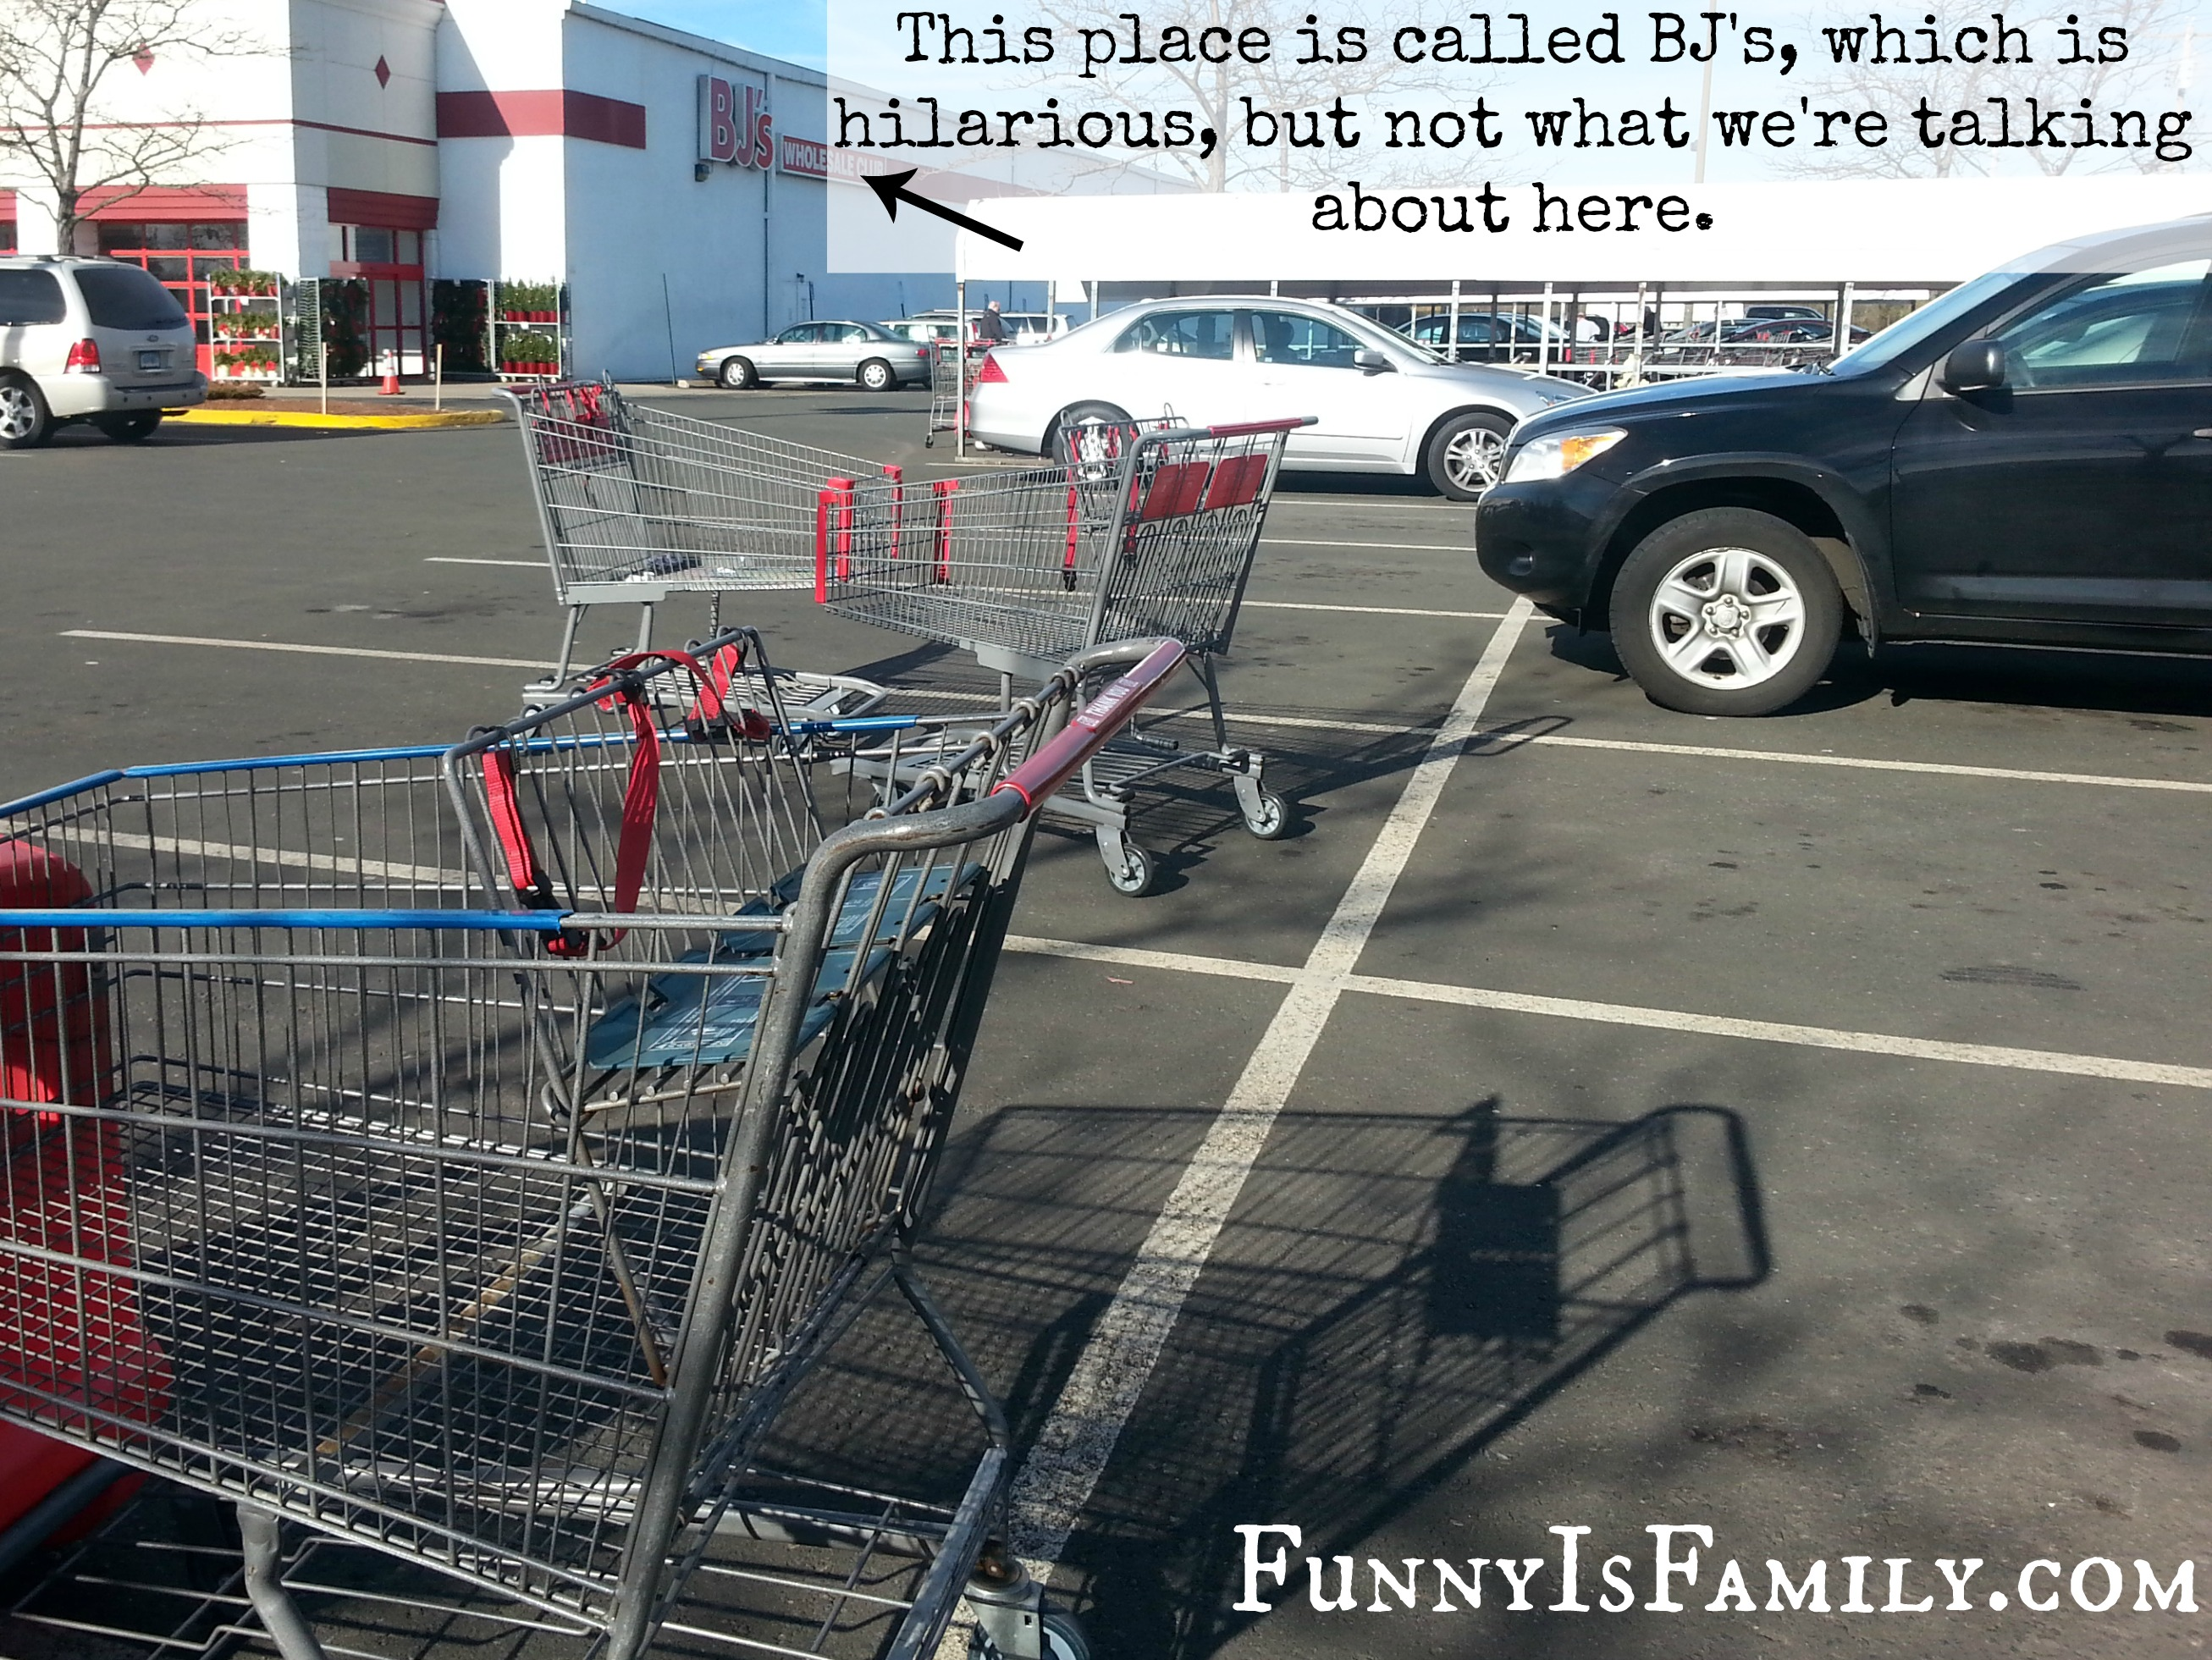 Three more that s six empty abandoned shopping carts in a span of eleven parking spaces it s madness since this is the season of giving i d love it if